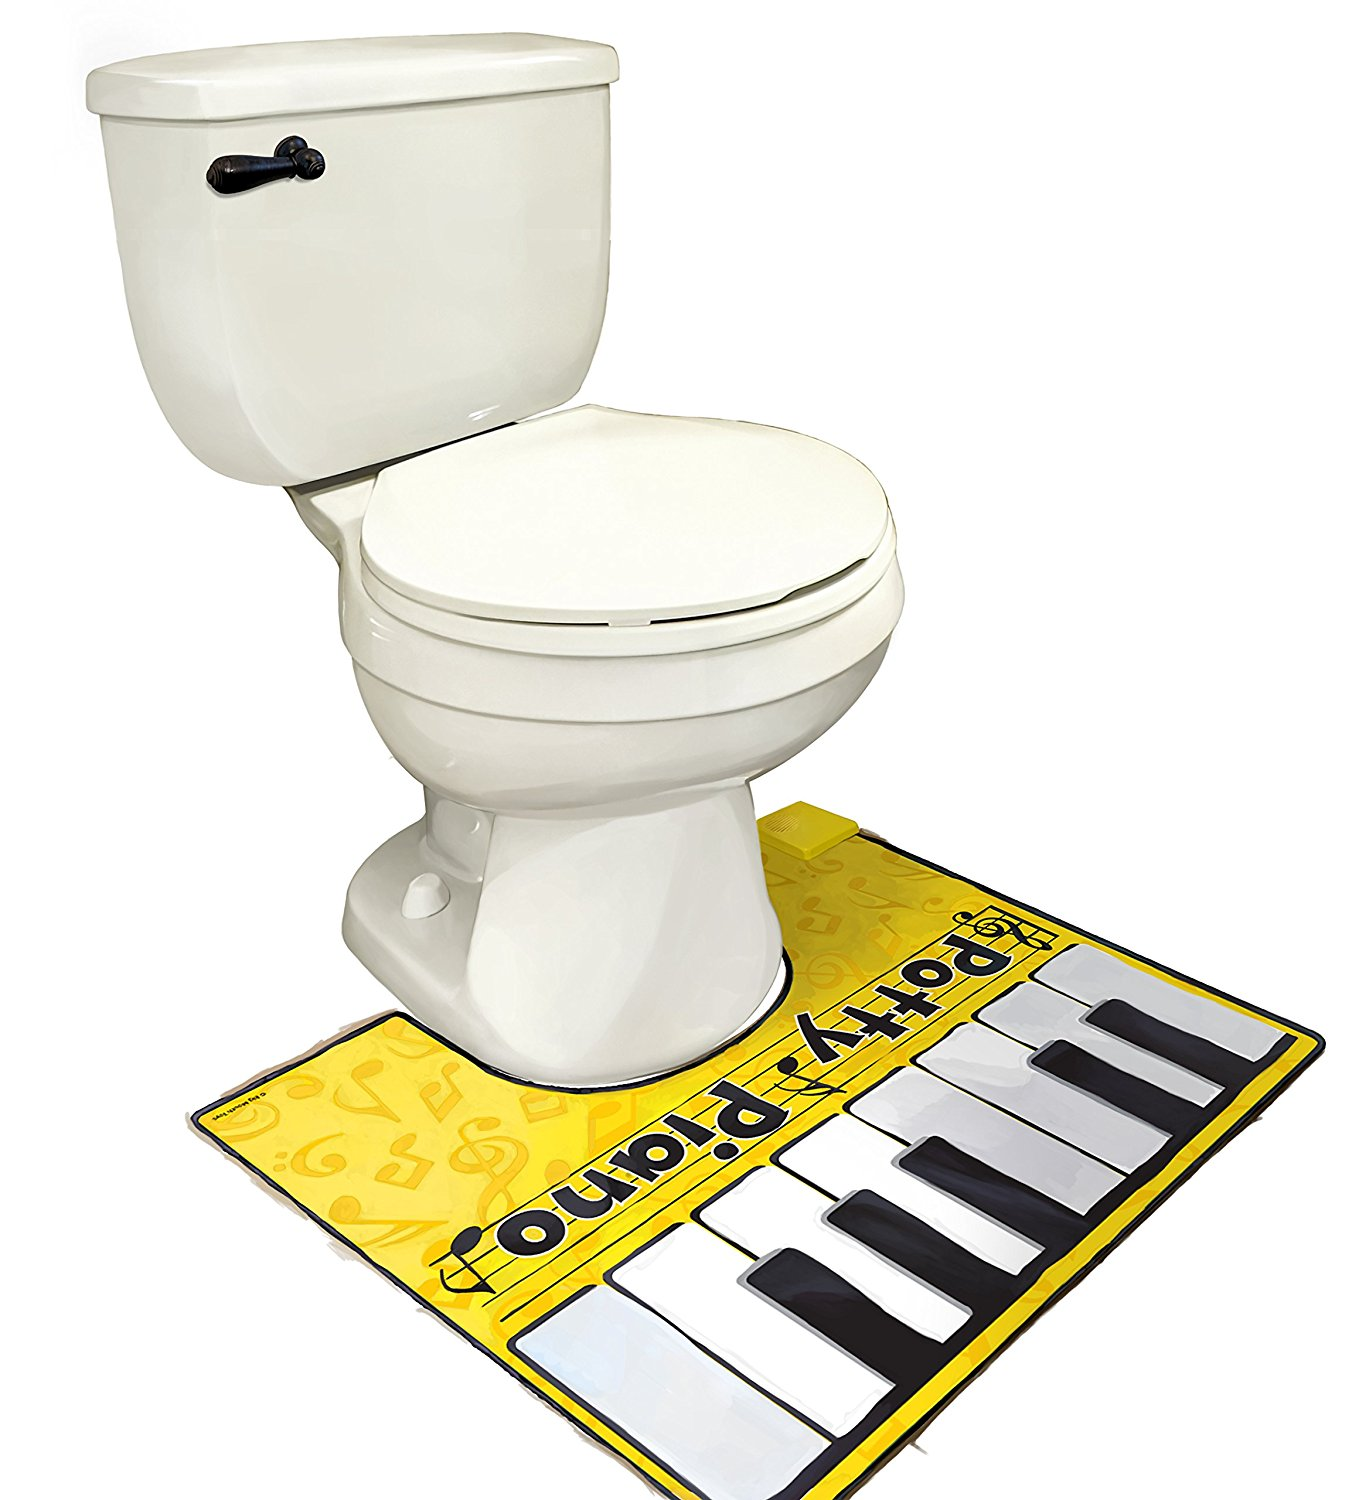 piano-toilettes-potty-wc-2